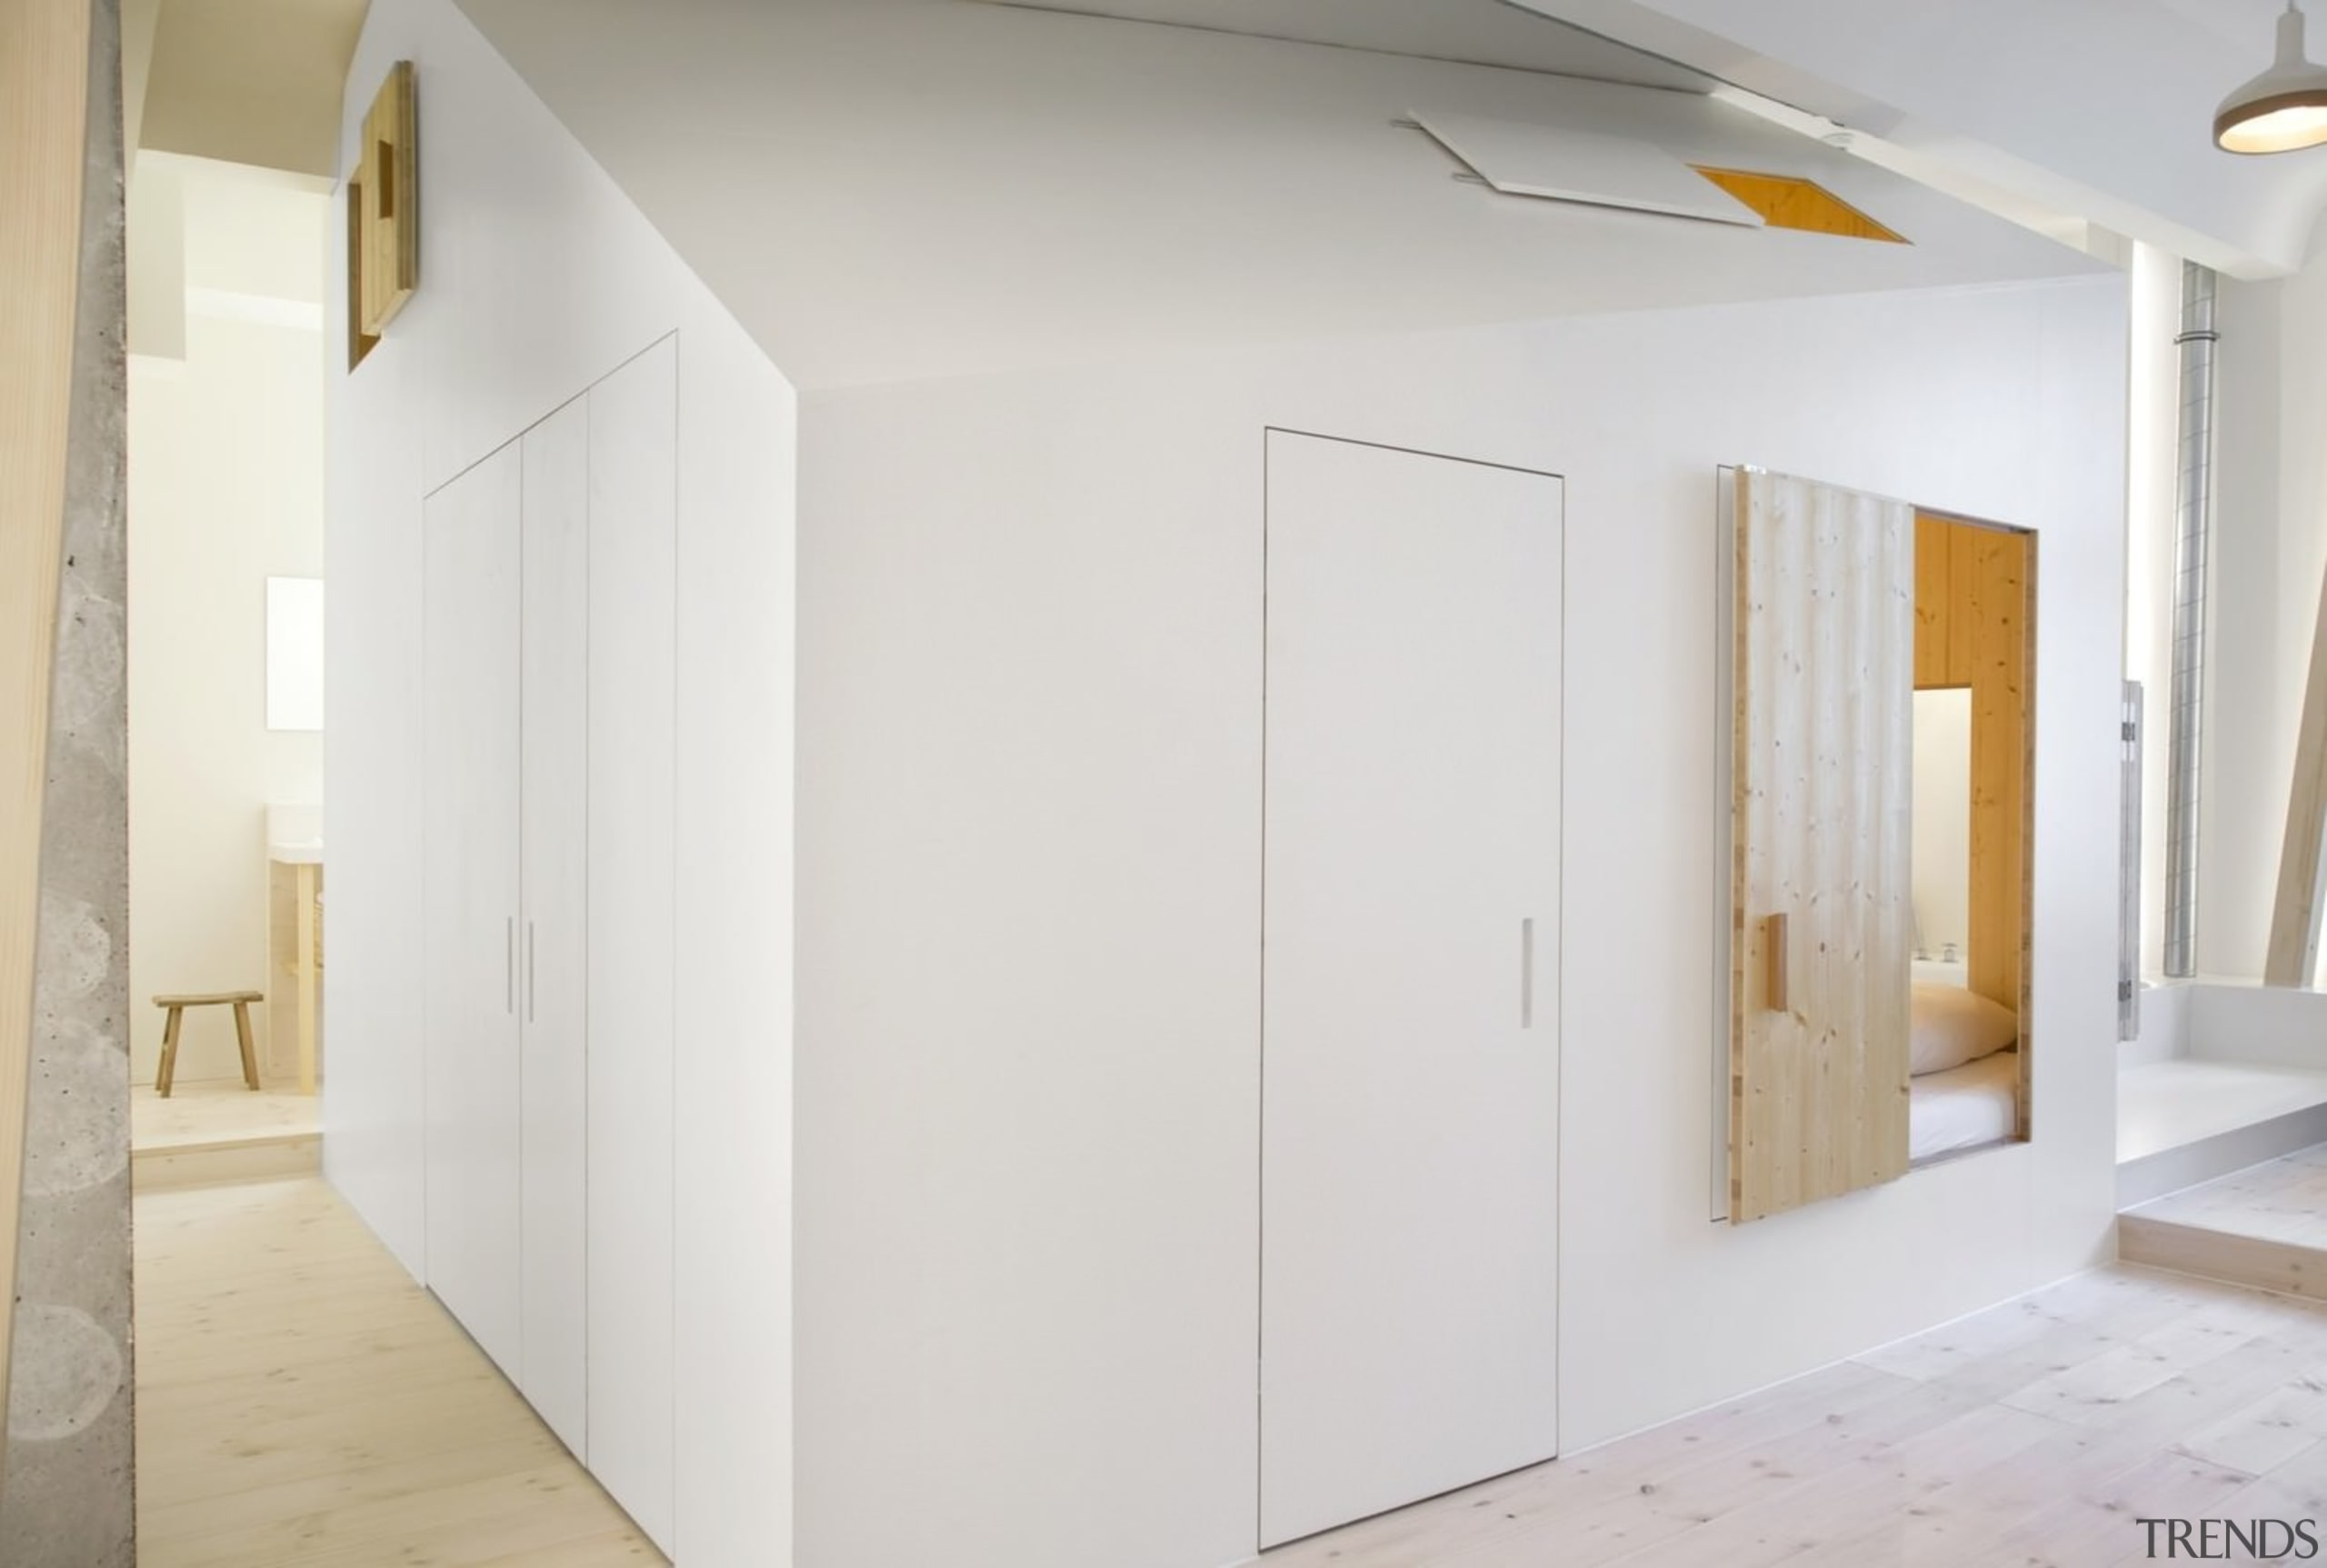 Architect: Sigurd LarsenPhotography by Rita Lino, James architecture, ceiling, floor, home, house, interior design, property, real estate, room, wall, white